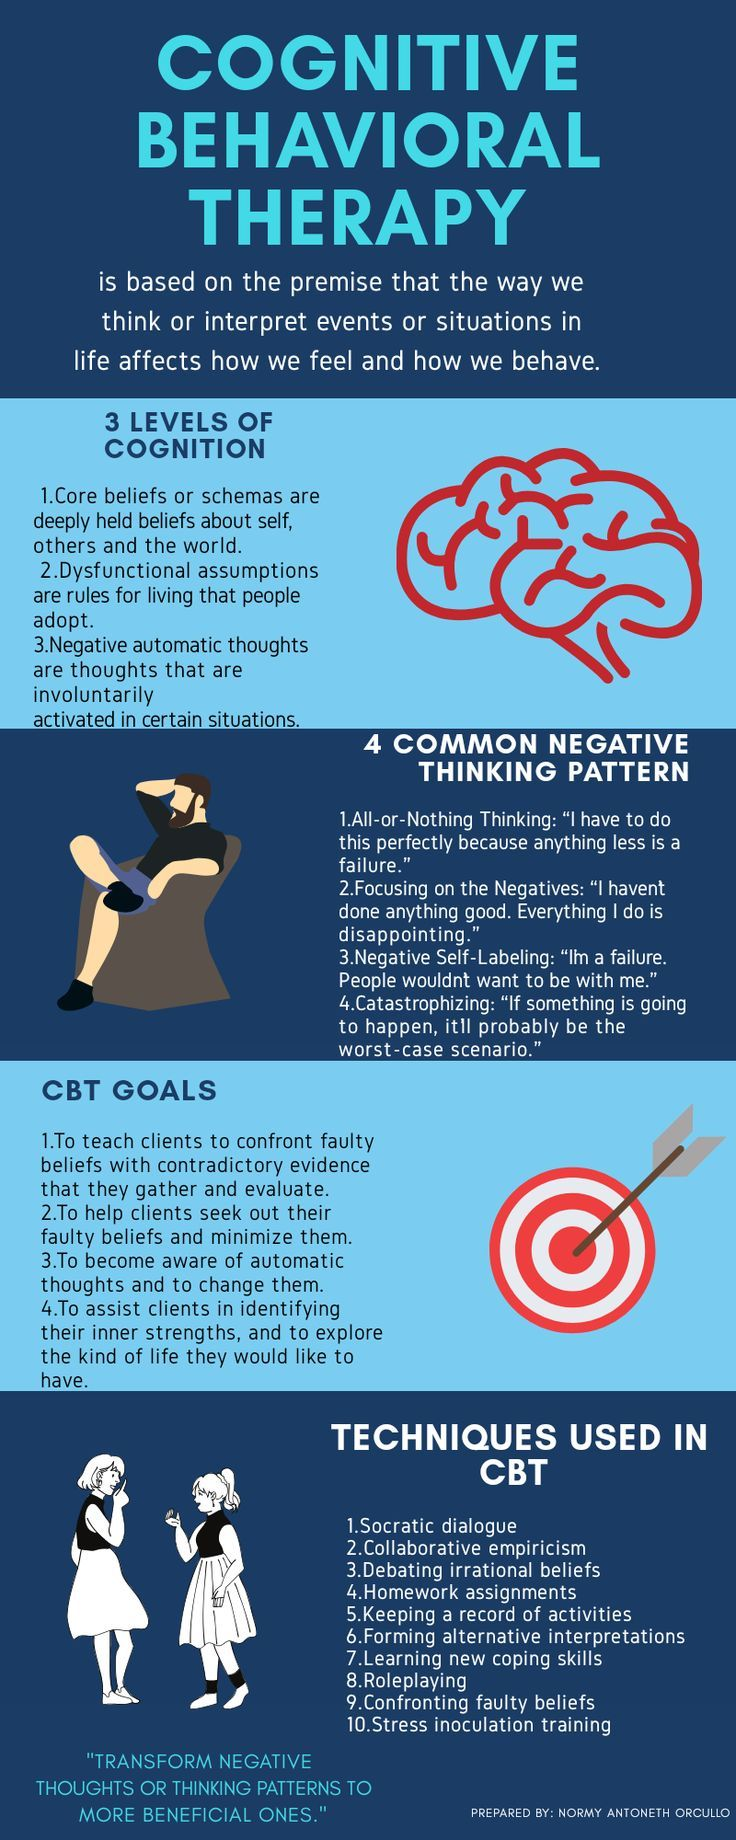 Cognitive Behavioral Therapy in 2020 | Cognitive behavioral therapy activities, Cognitive behavioral